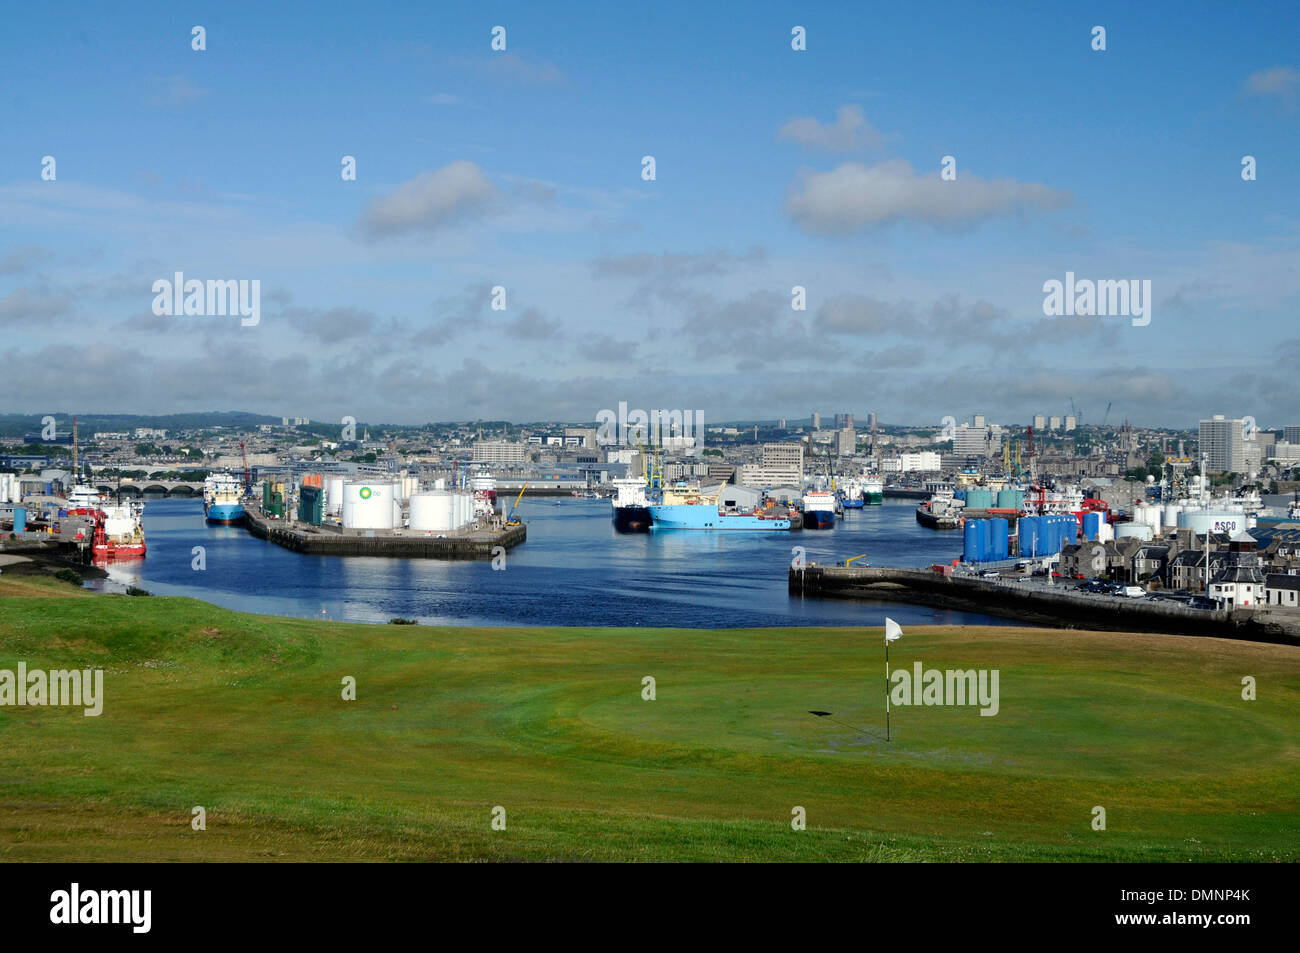 aberdeen granite city commercial port seaports marine engineering - Stock Image